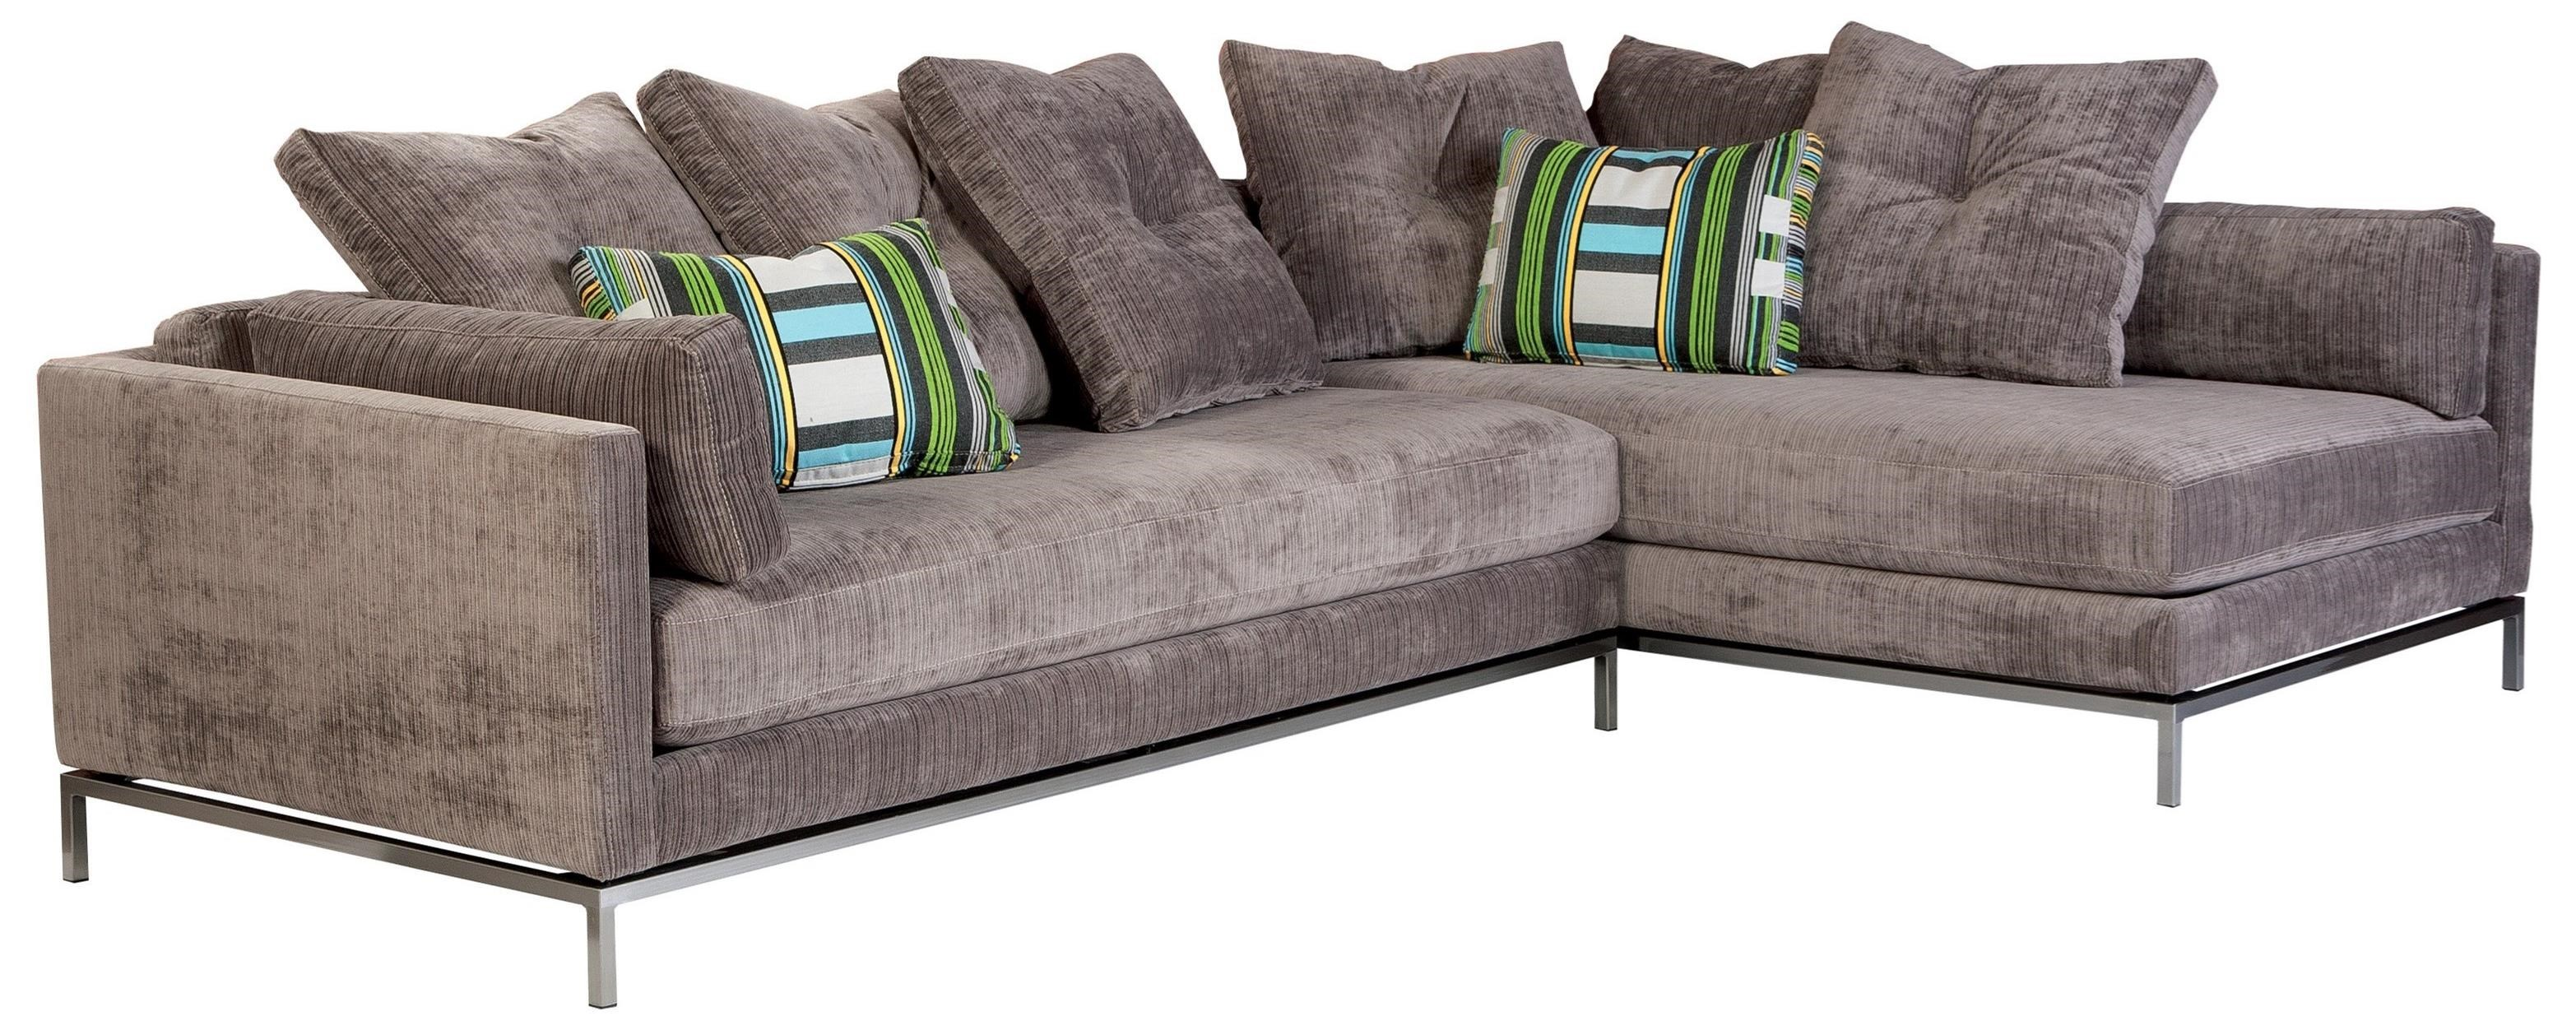 Jonathan Louis Furniture Reviews Jonathan Louis Lombardy Sofa We Showcase Some Really Great